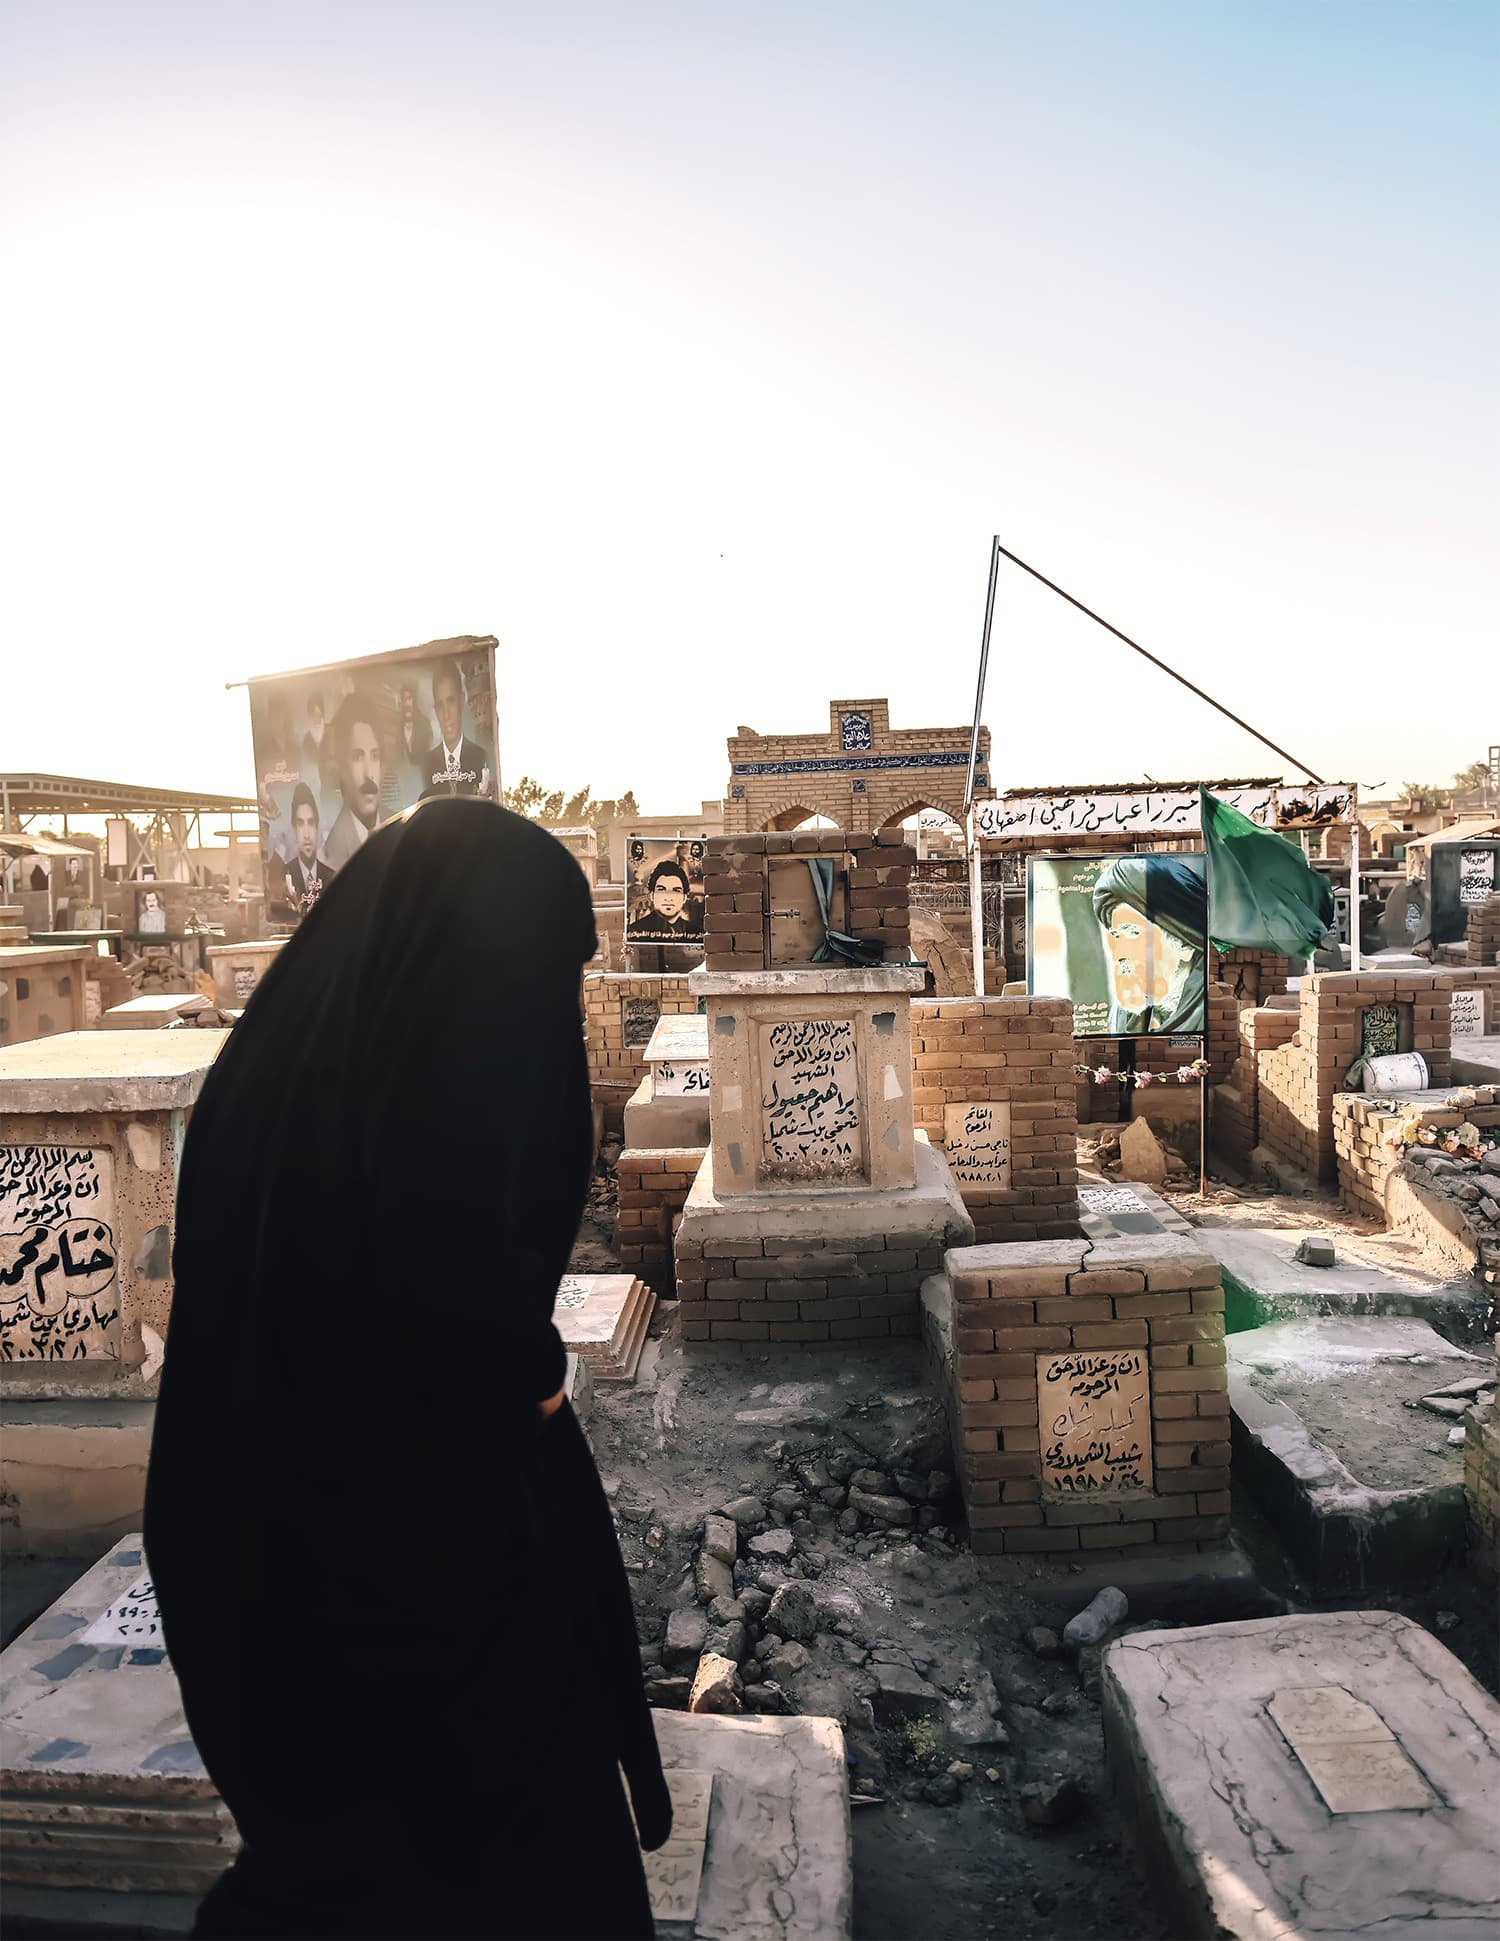 An Iraqi woman visits a relative's grave in Wadi-Al Salaam, which is said to contain over 5 million bodies.